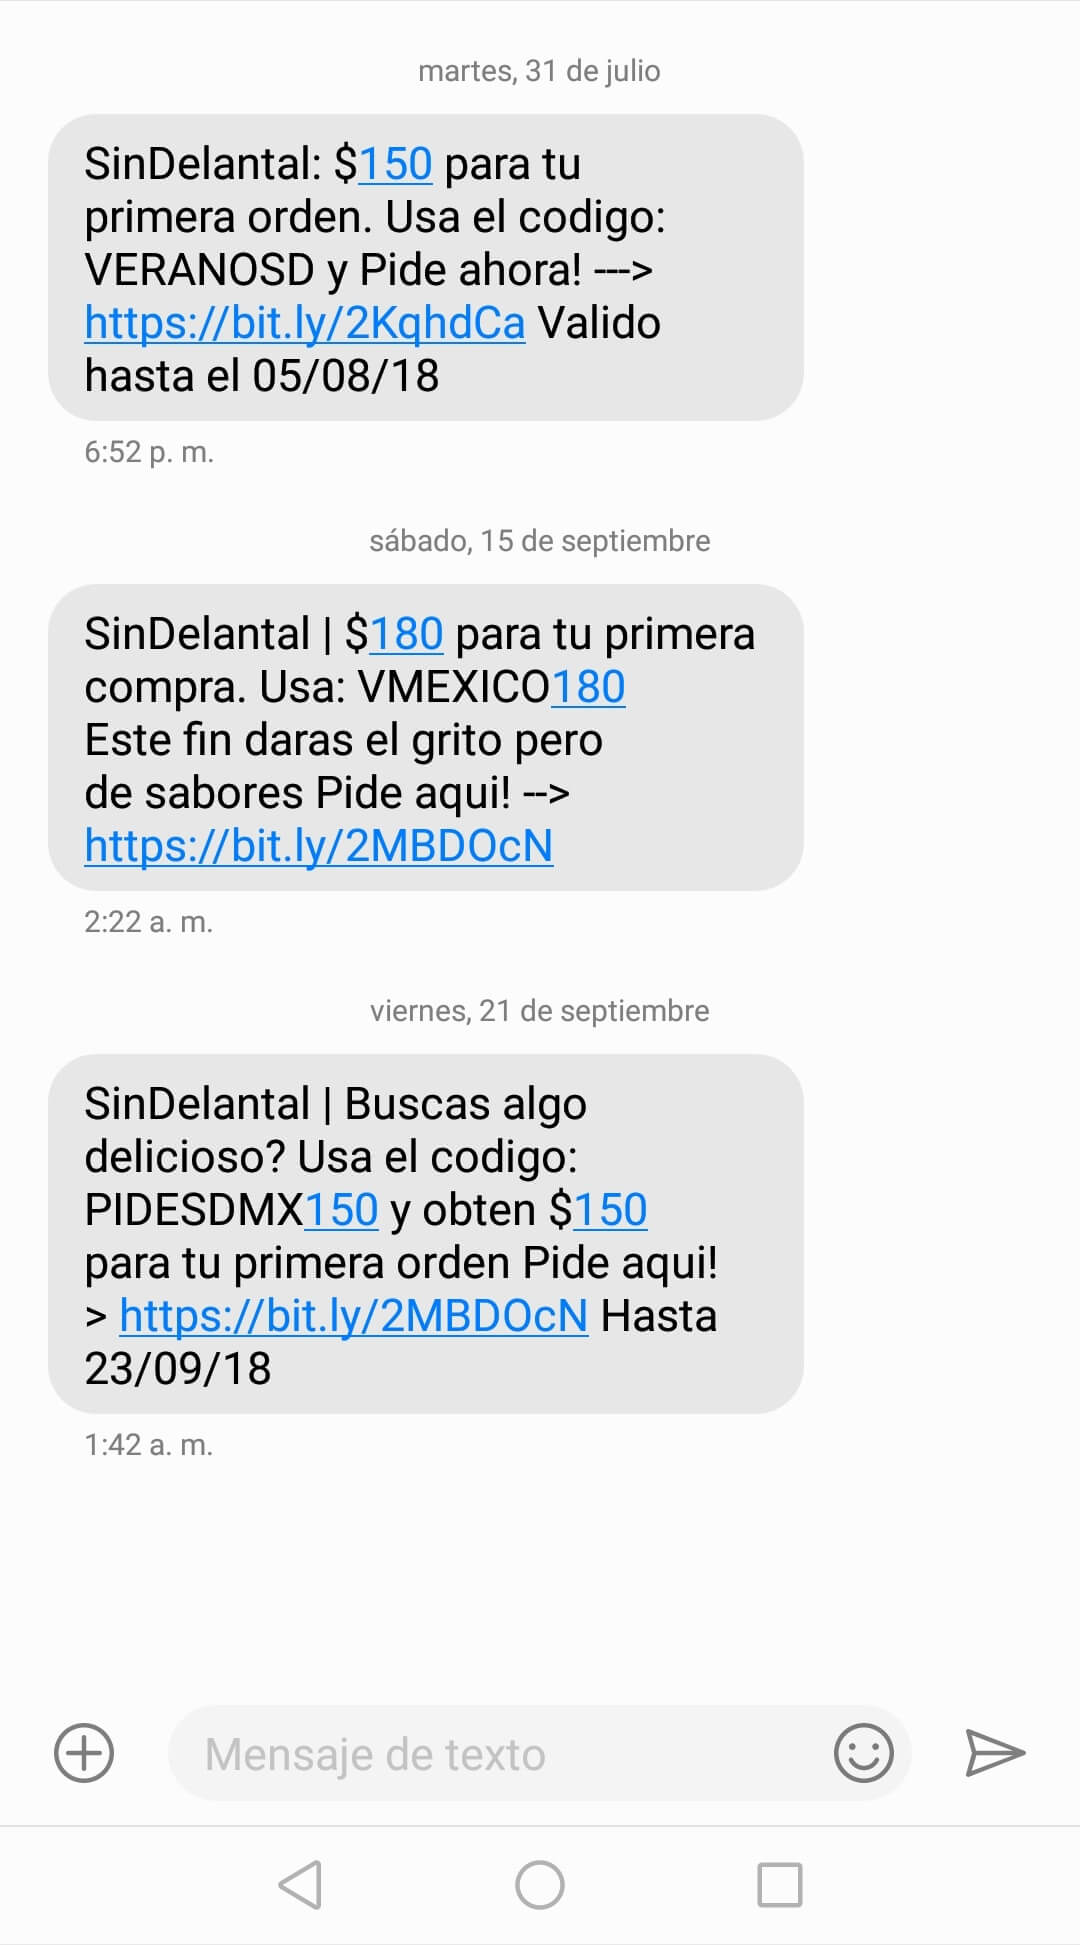 Marketing por sms. Ejemplo de Sin Delantal.